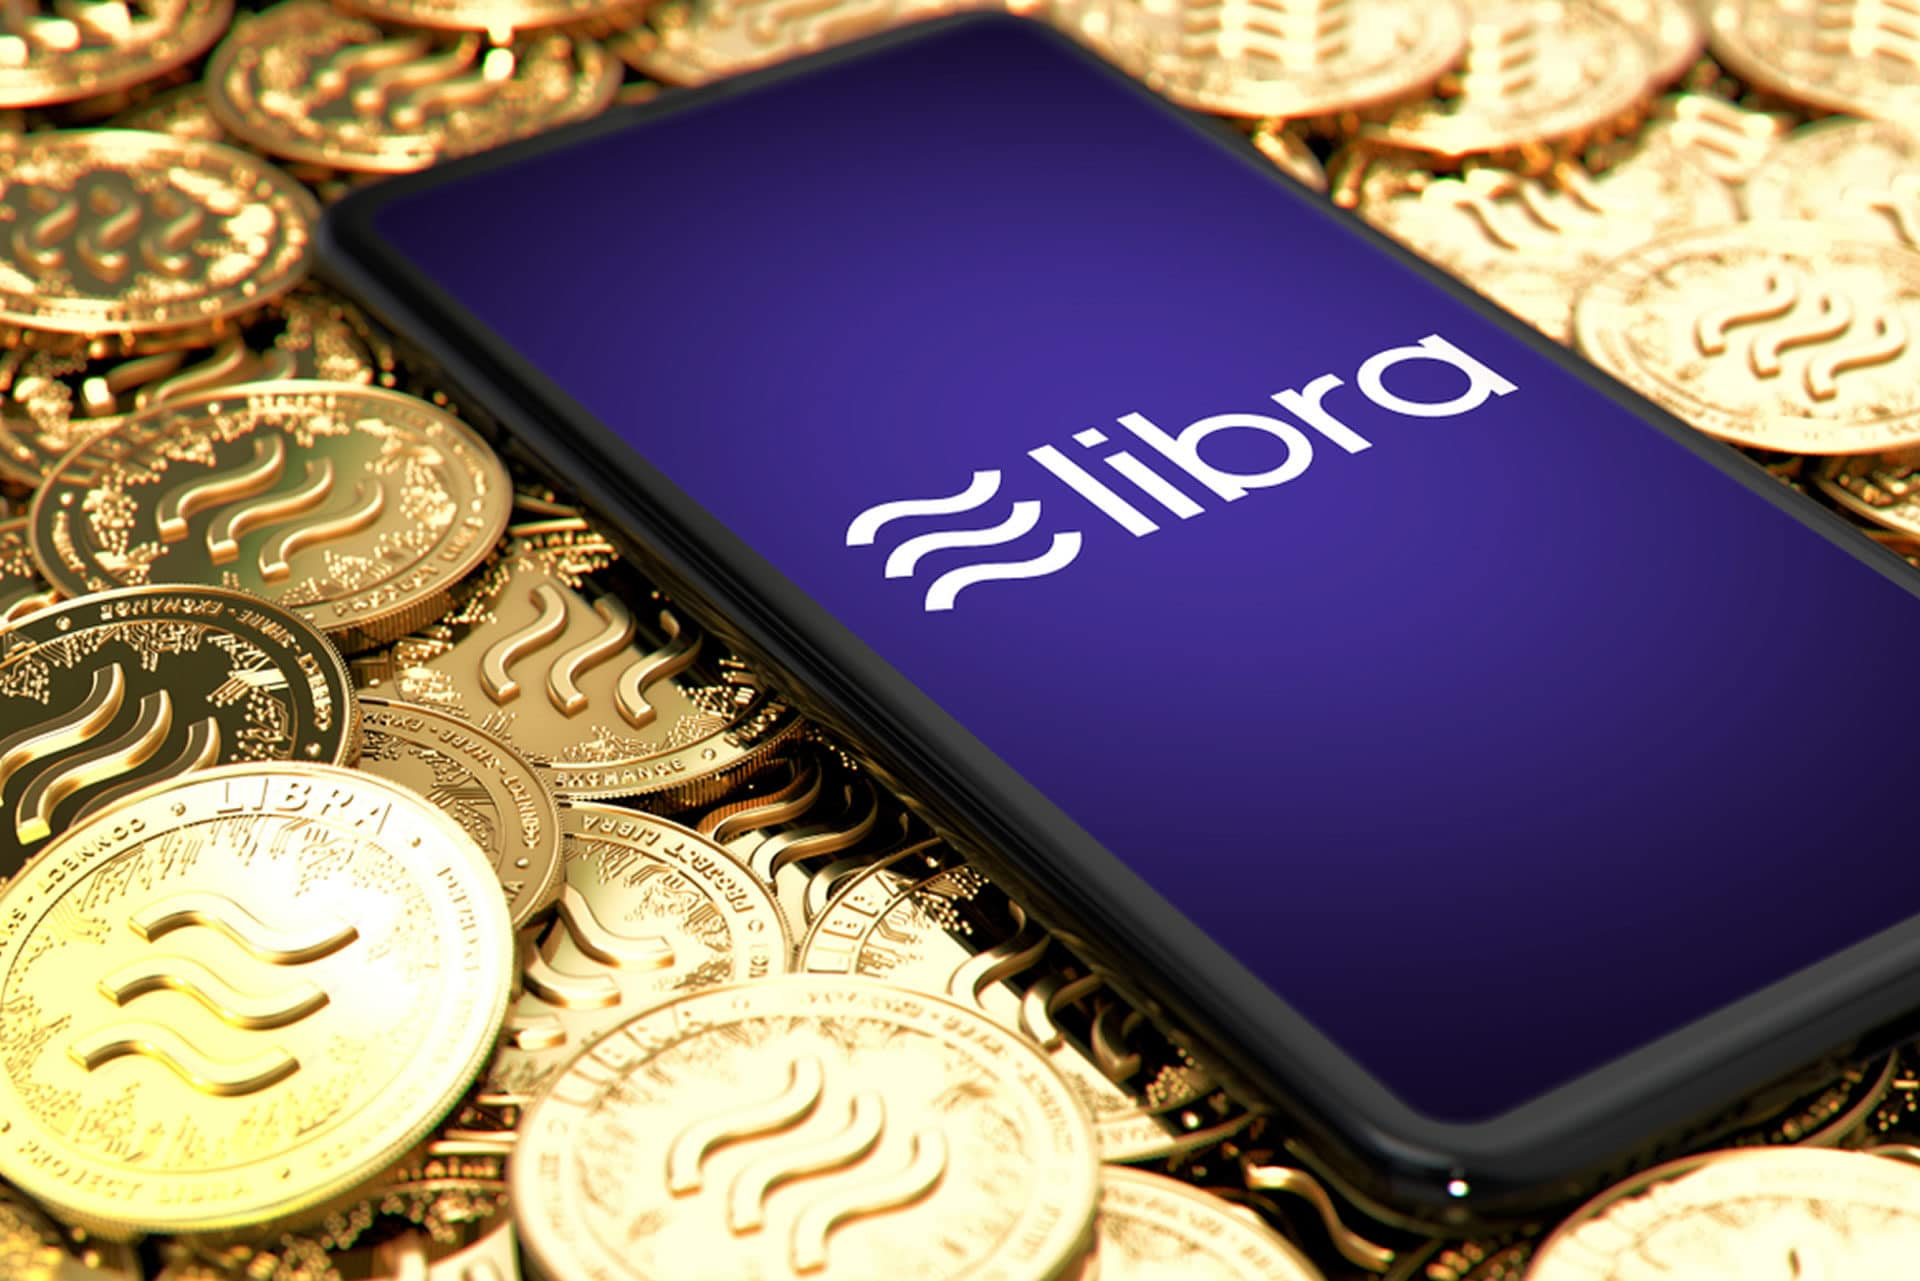 Libra Members Consider Quitting Project Due to Gov't Pressure: Report